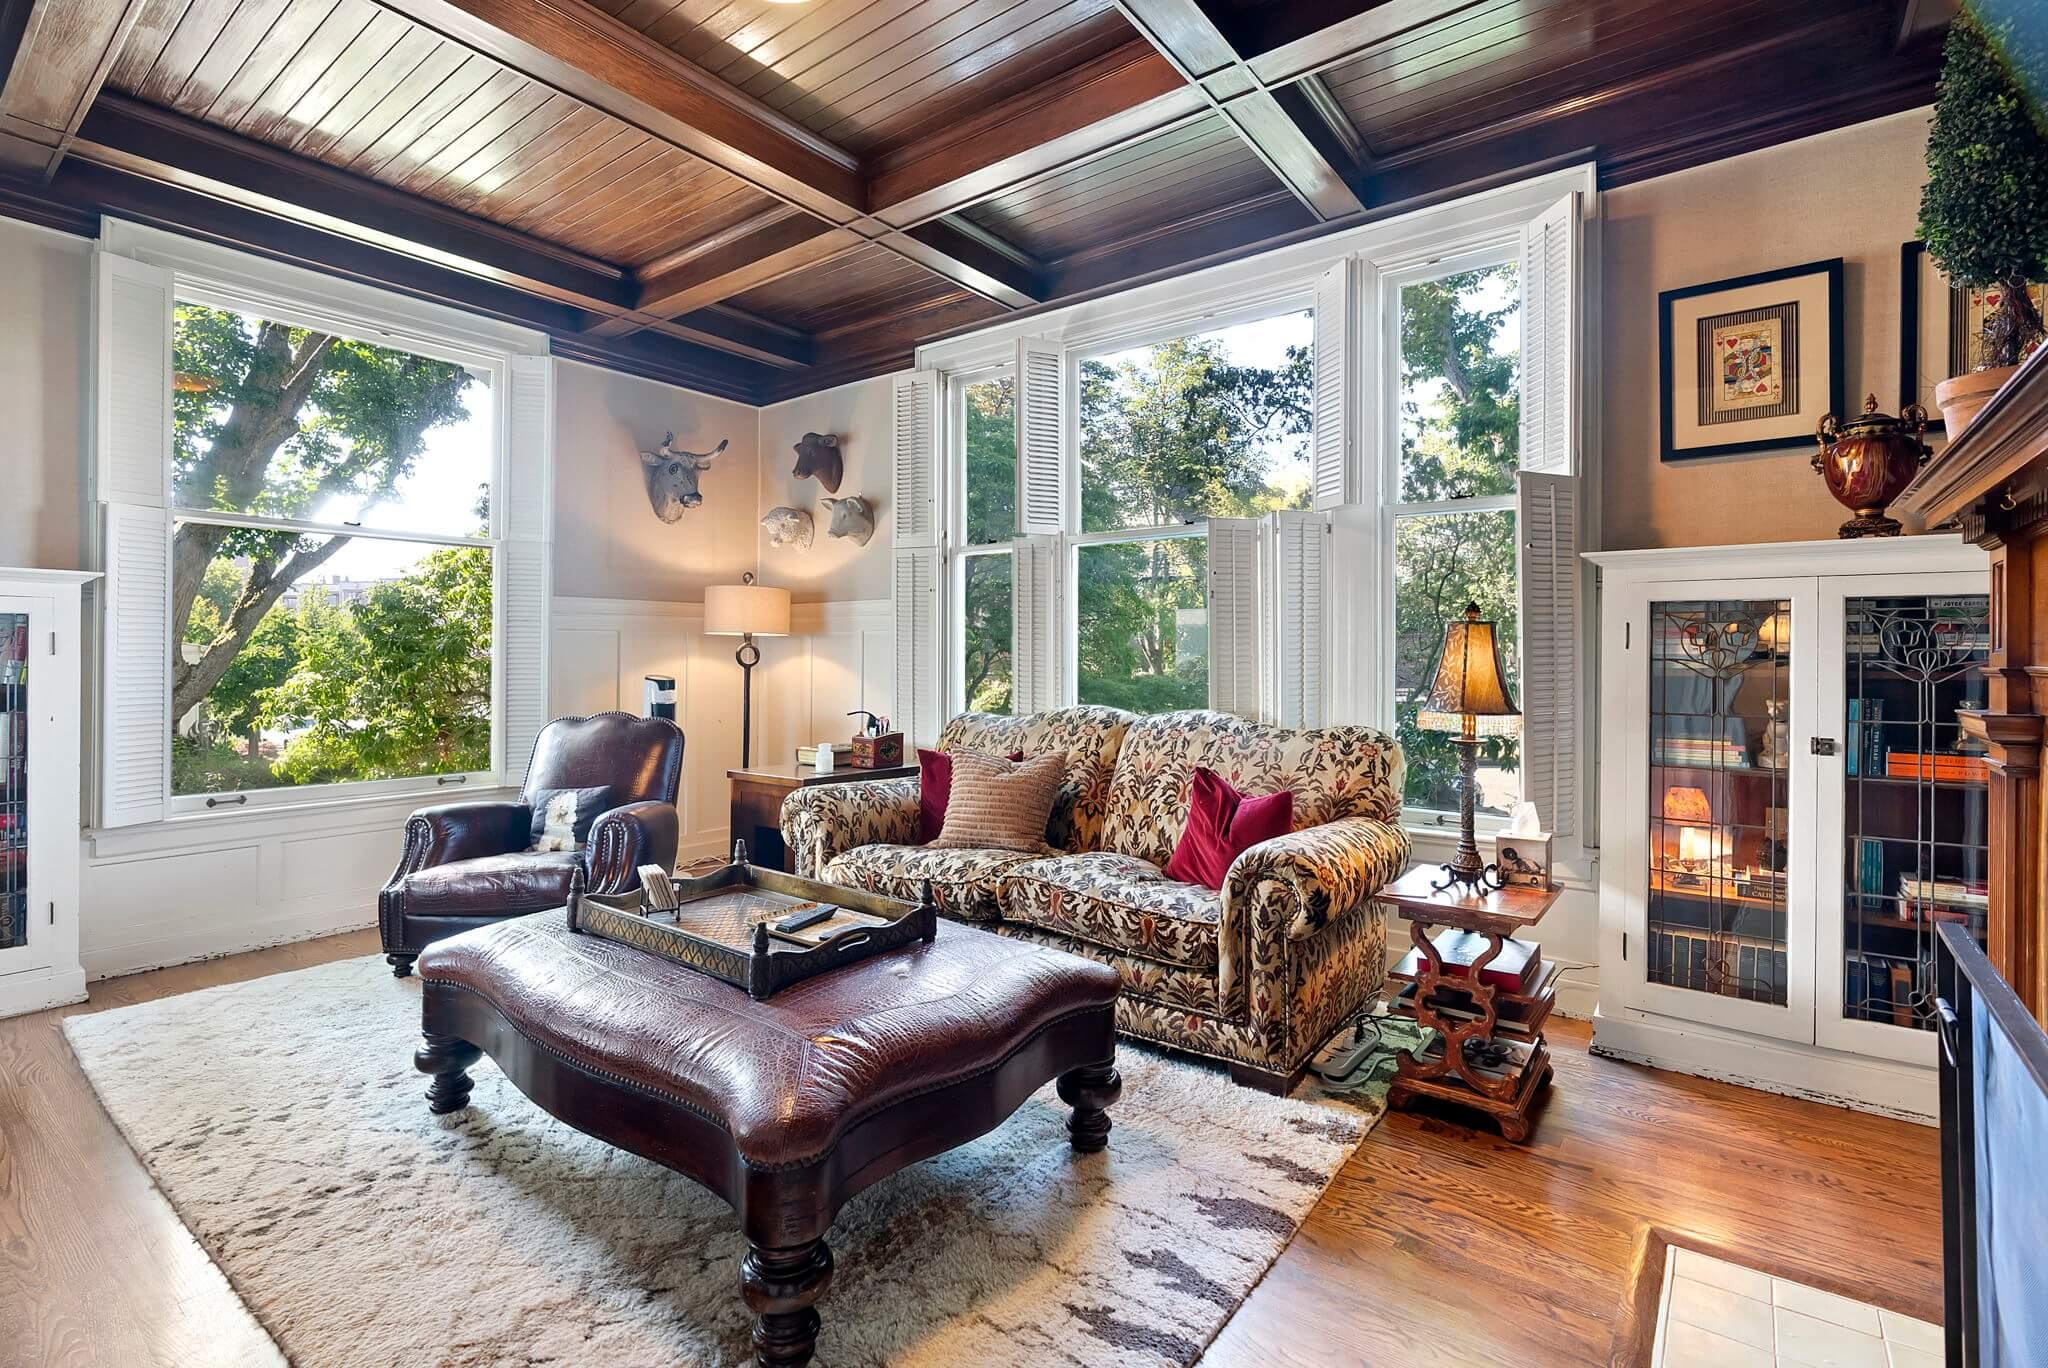 Main floor library with original box beam ceilings and leaded glass cabinets